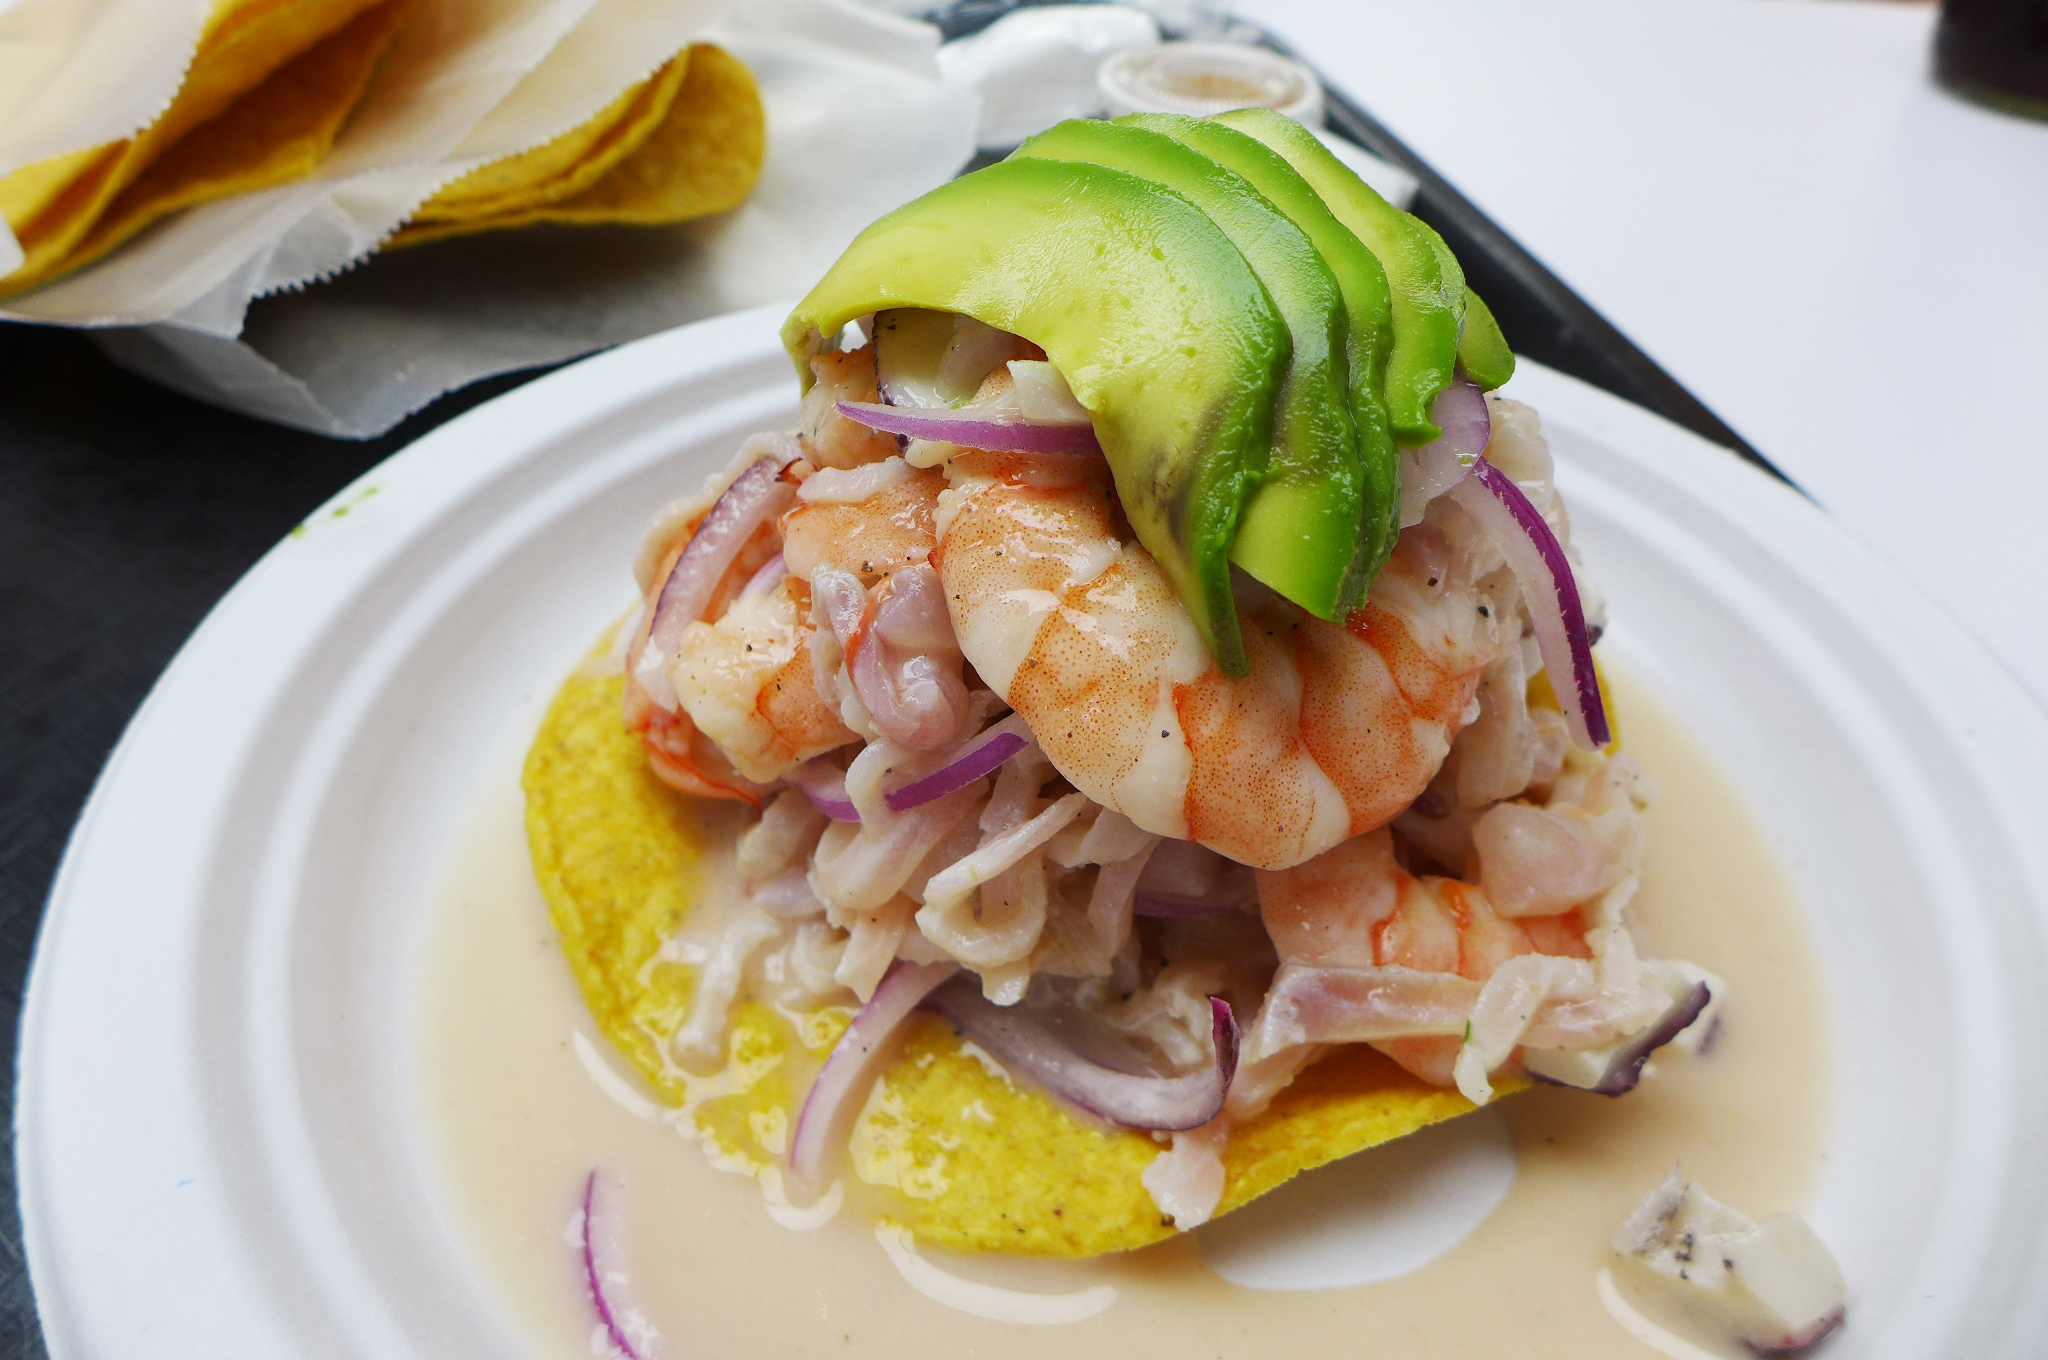 A round cracker with shrimp and other seafood piled high, topped with sliced and fanned avocado.